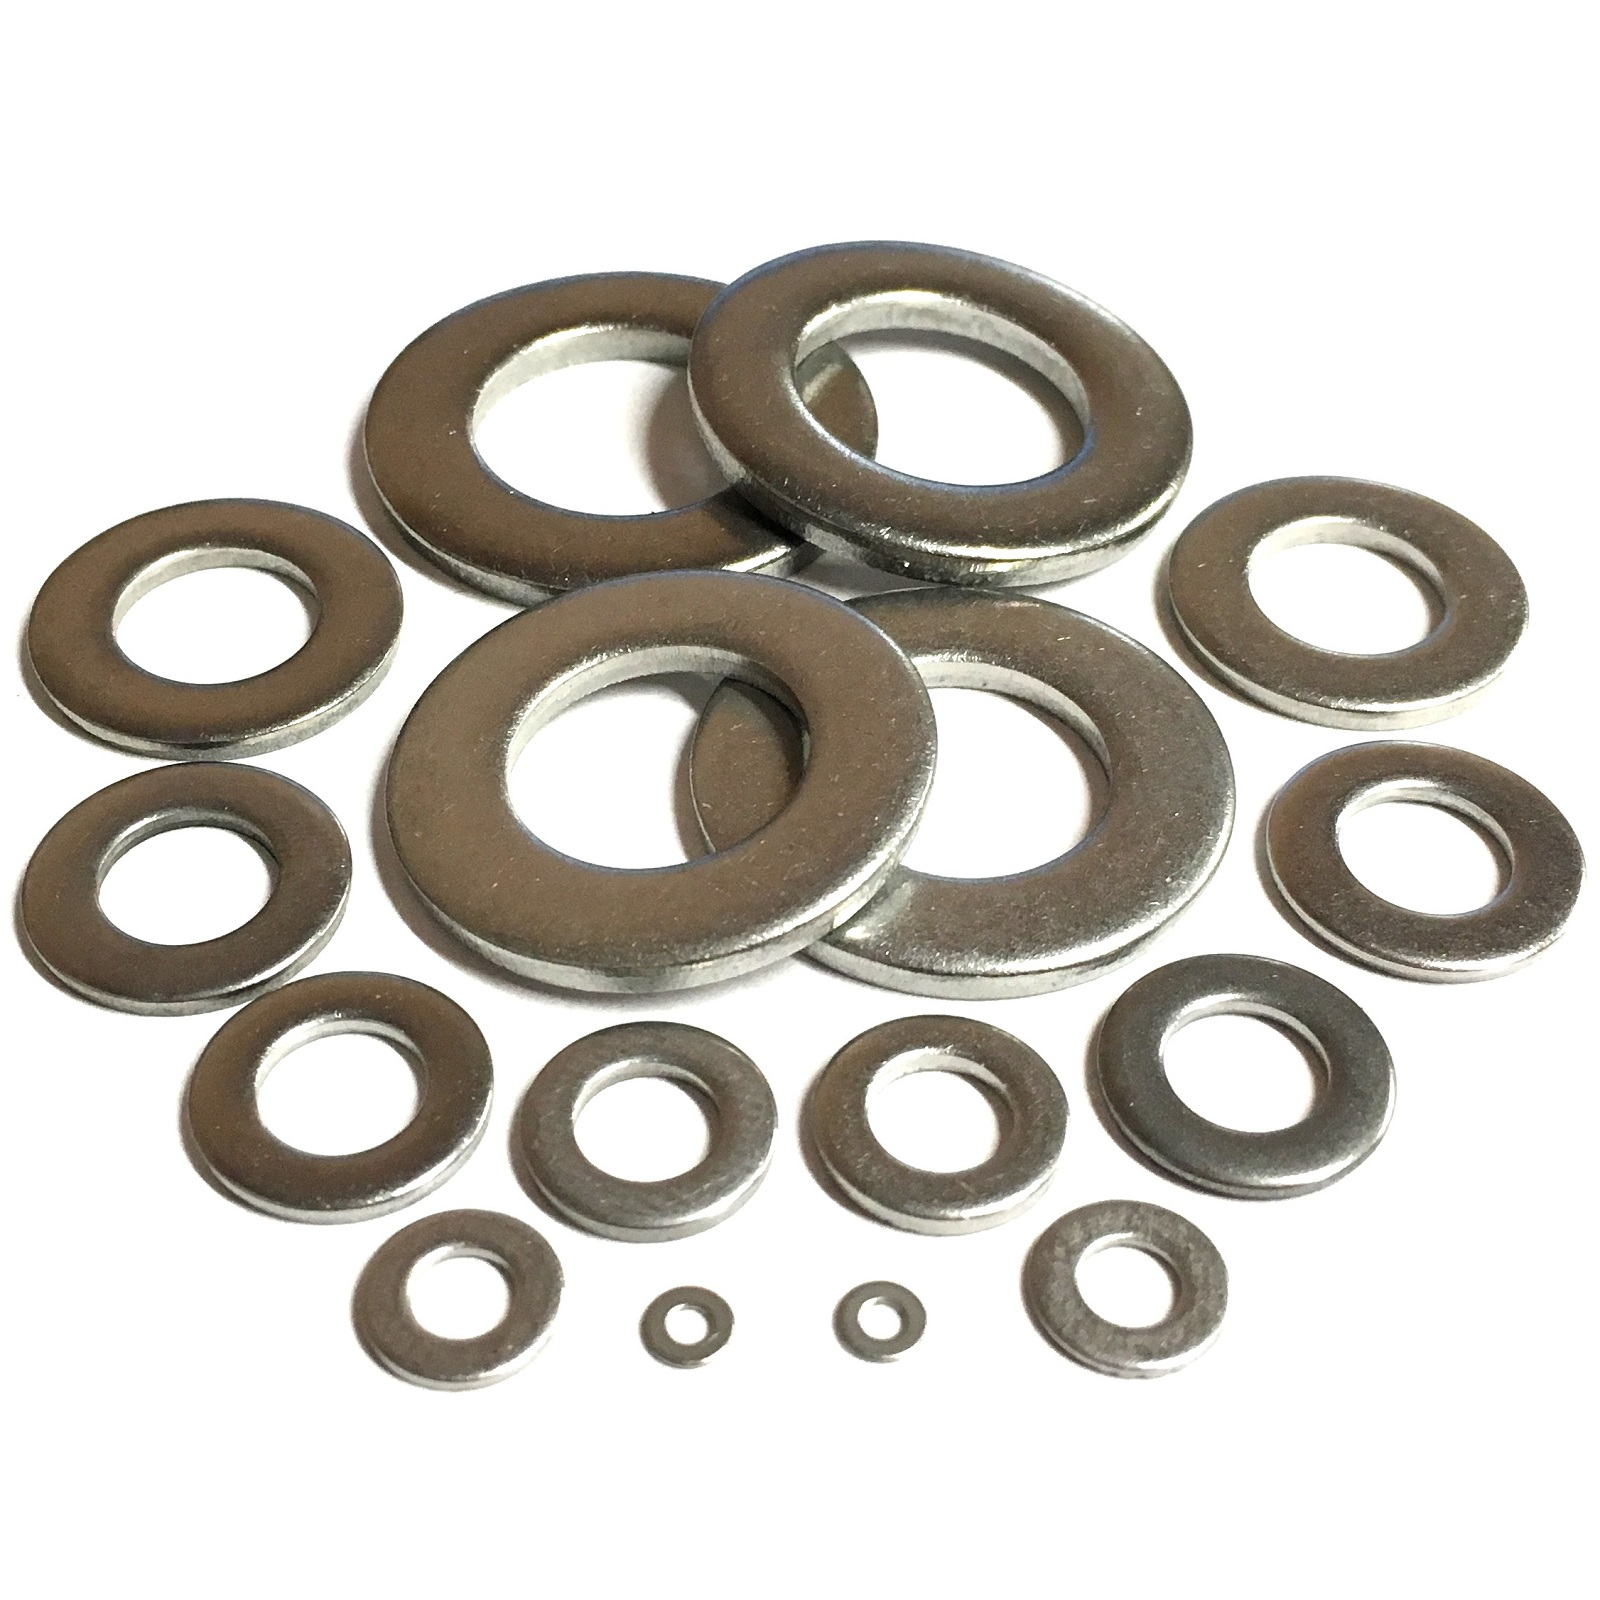 A2 M8 Stainless Steel Flat Washer pack of 10